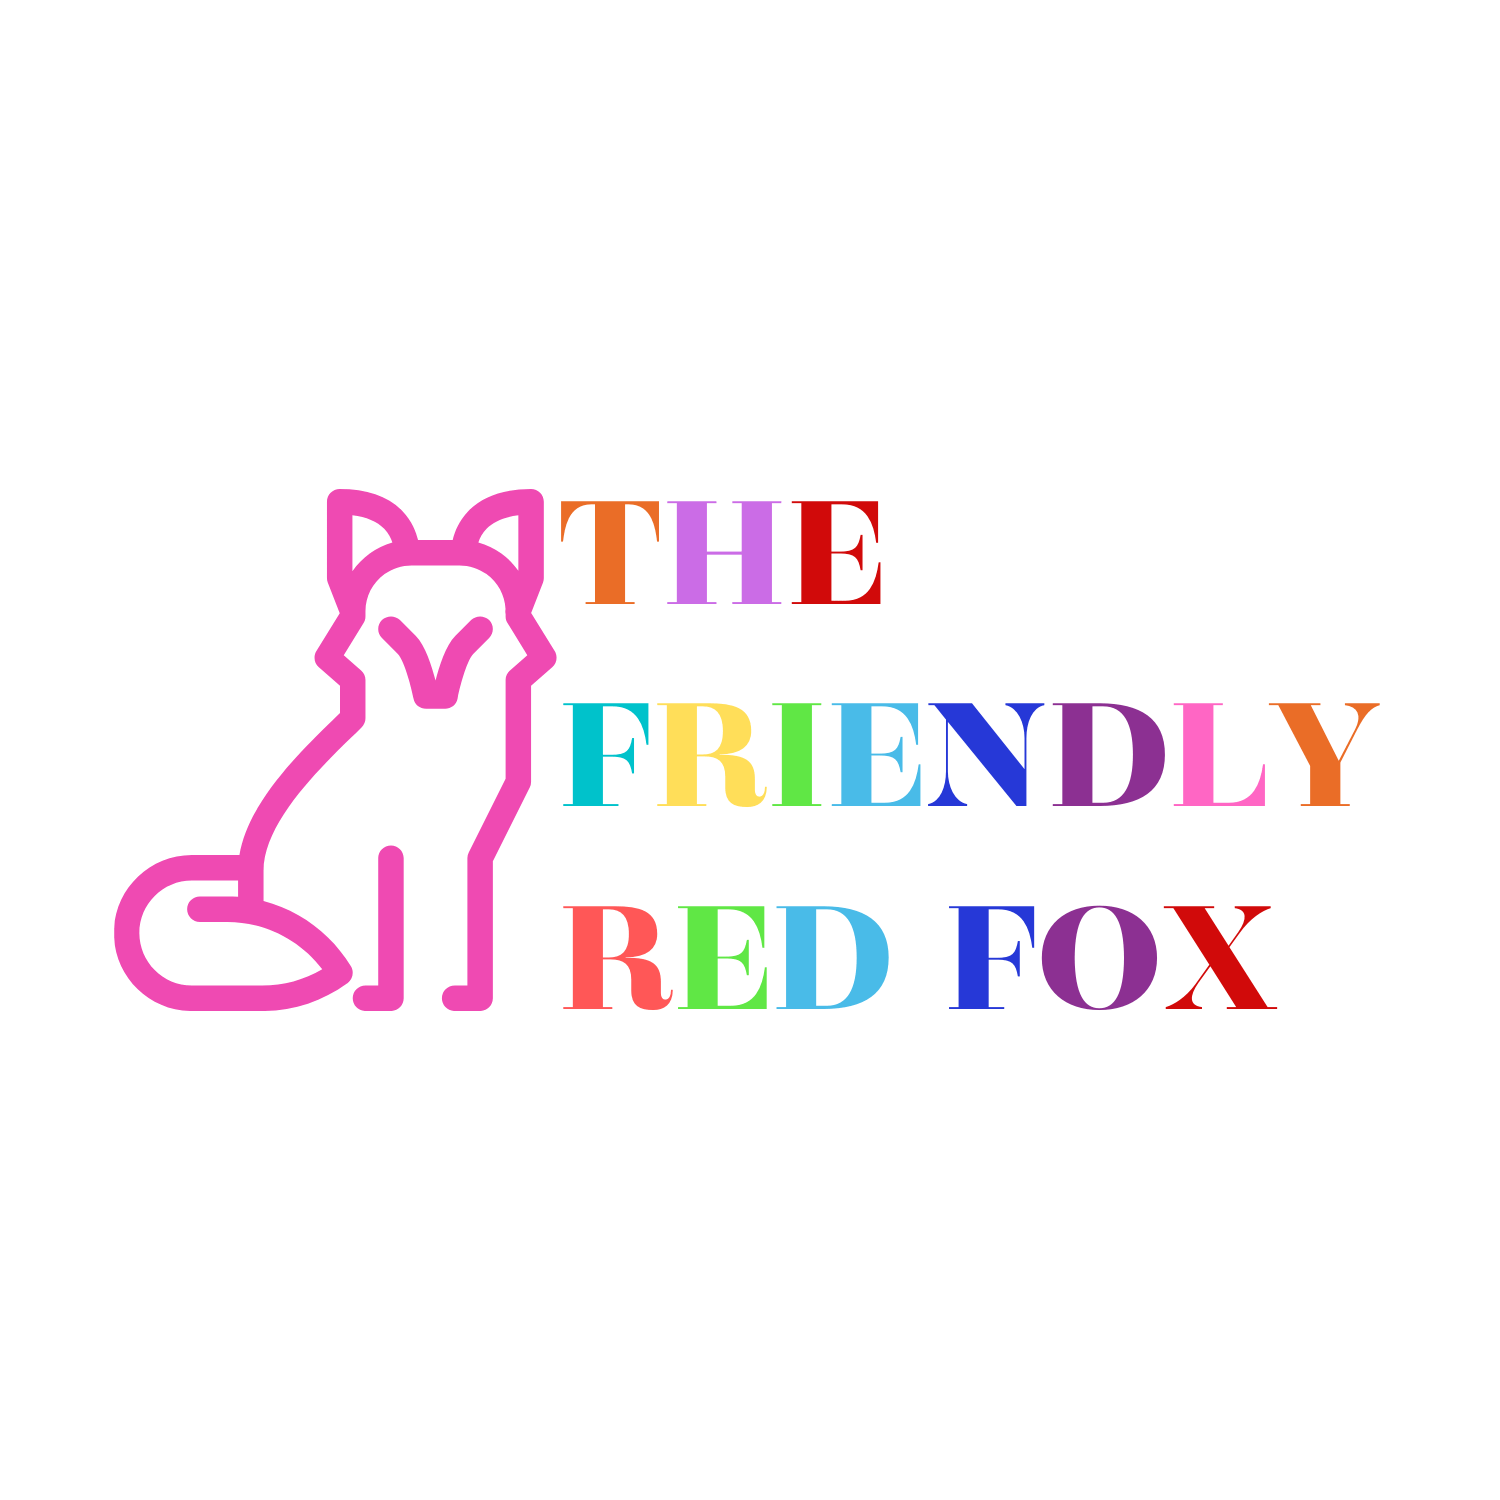 thefriendlyredfox.com